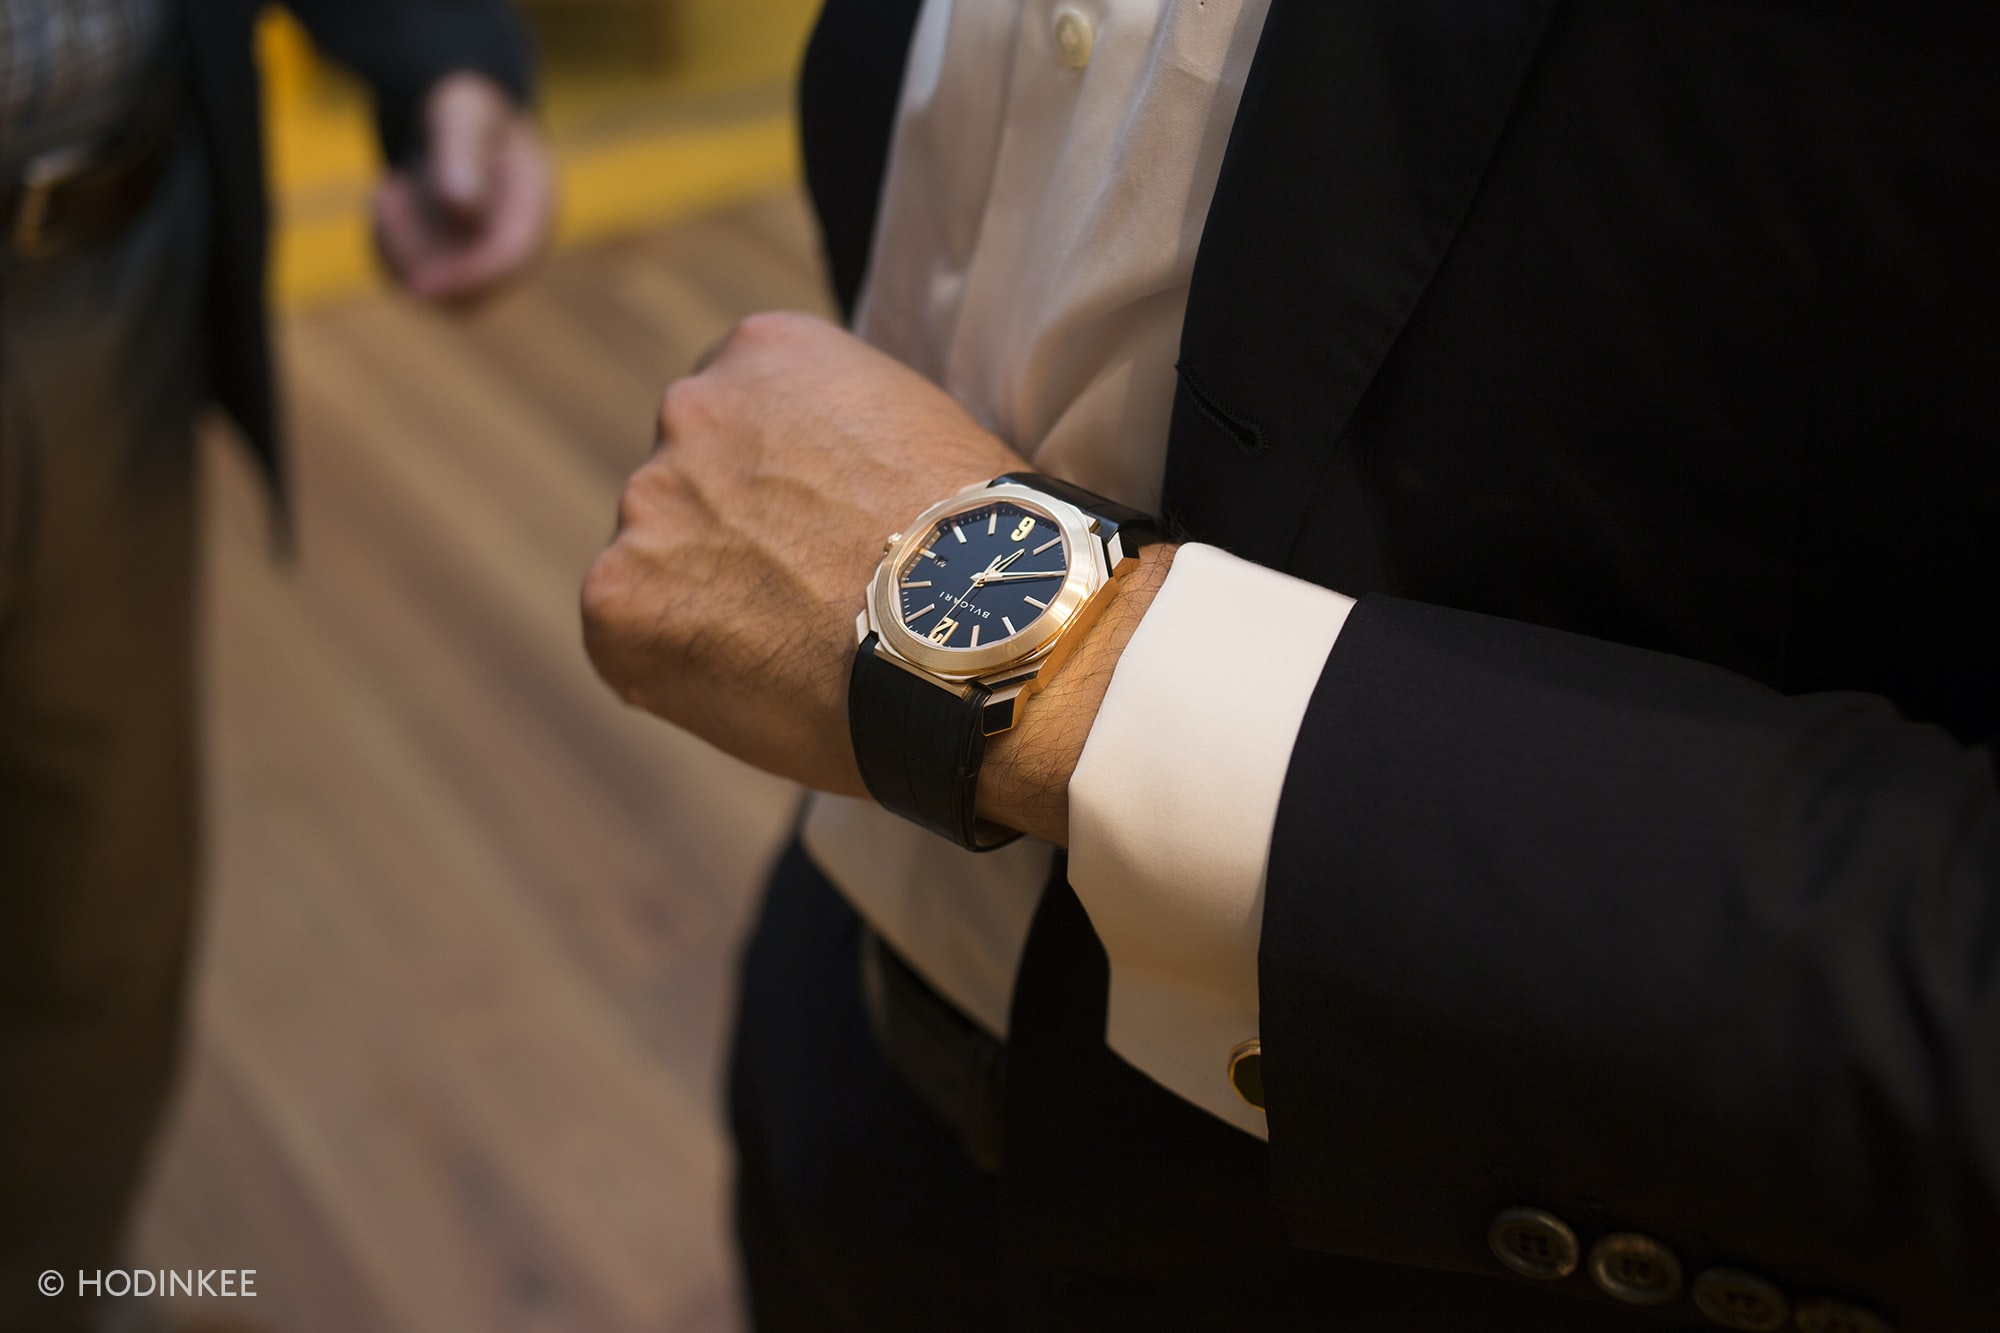 Photo Report: The Bulgari x HODINKEE Celebration Of The Octo Finissimo Minute Repeater In New York City Photo Report: The Bulgari x HODINKEE Celebration Of The Octo Finissimo Minute Repeater In New York City 20019897 copy